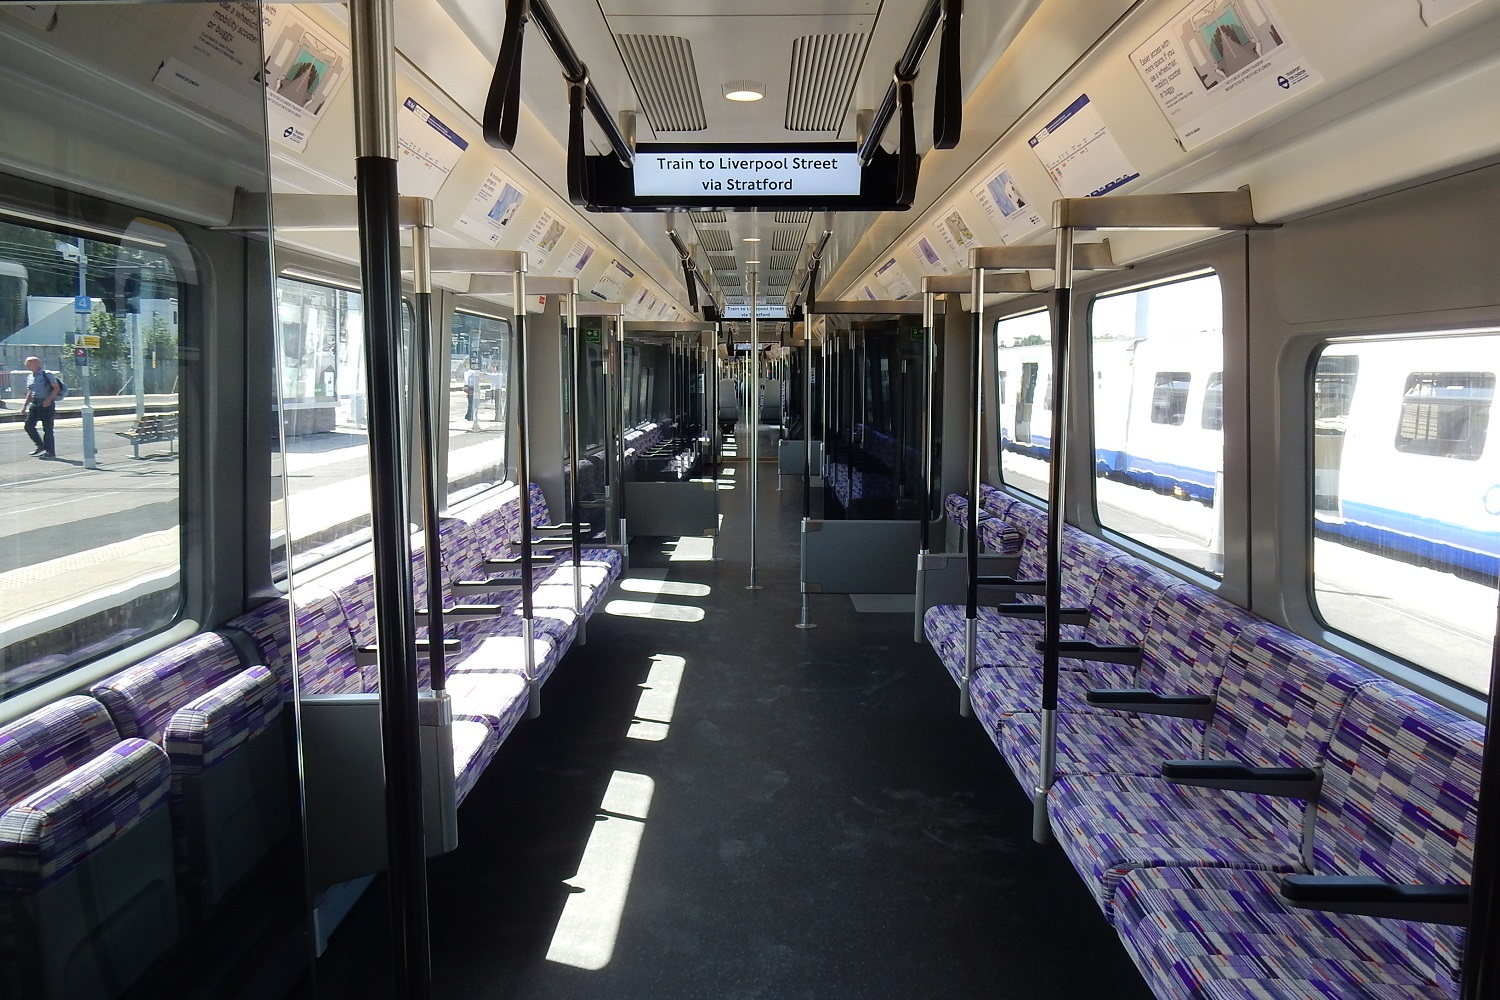 Image of the interior of a Liverpool Street Station-bound TfL train.